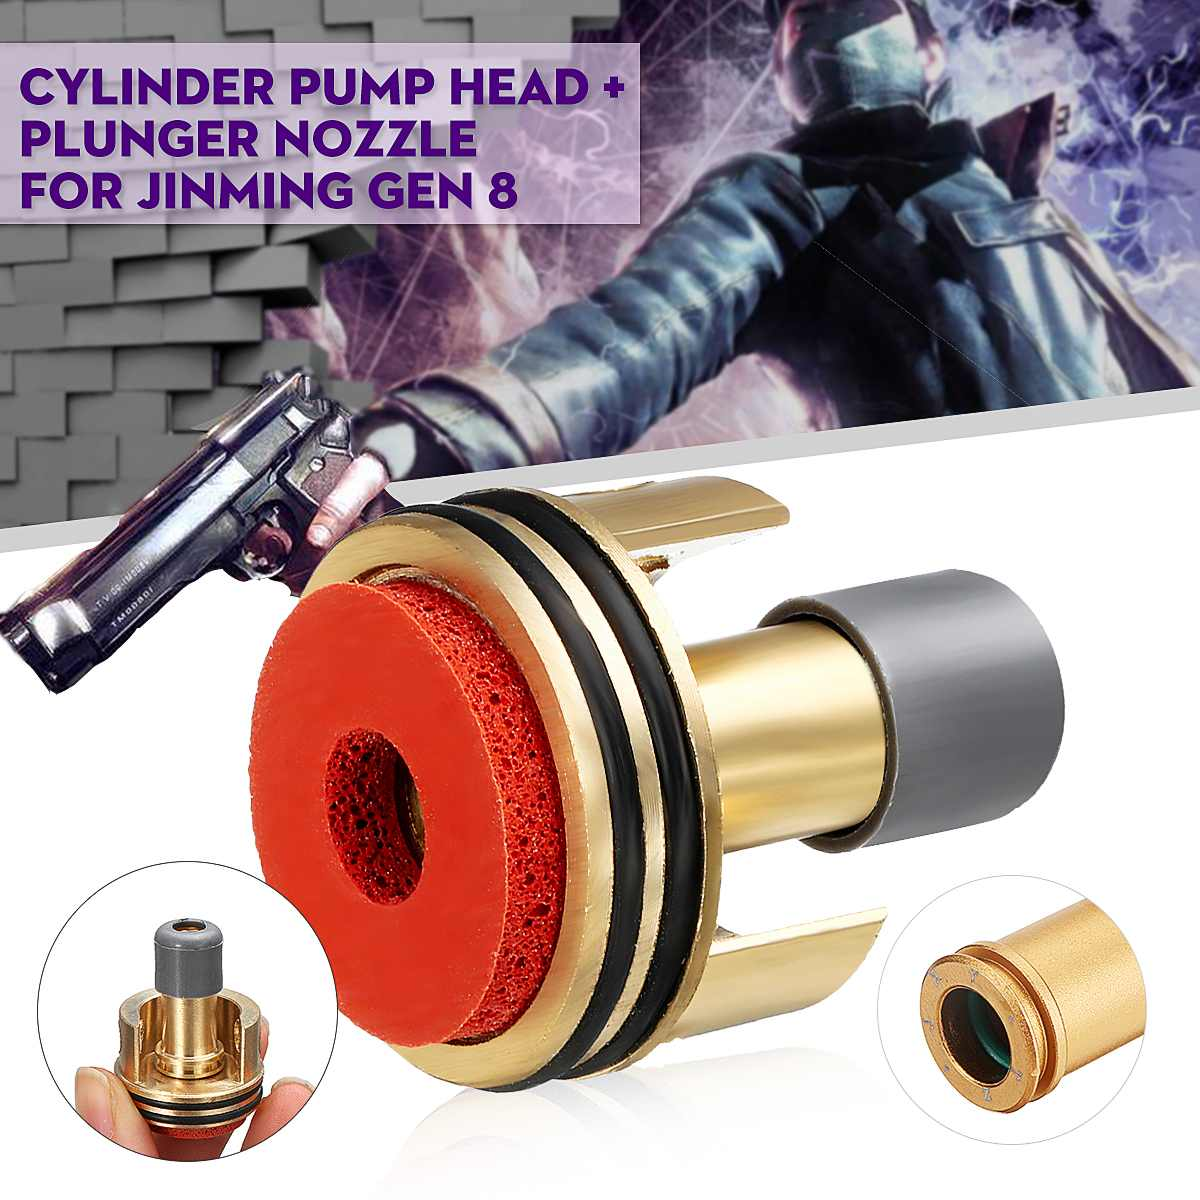 Upgrade Double Cylinder Pump Head With Plunger Nozzle For Jinming Gen 8th M4A1 Guns